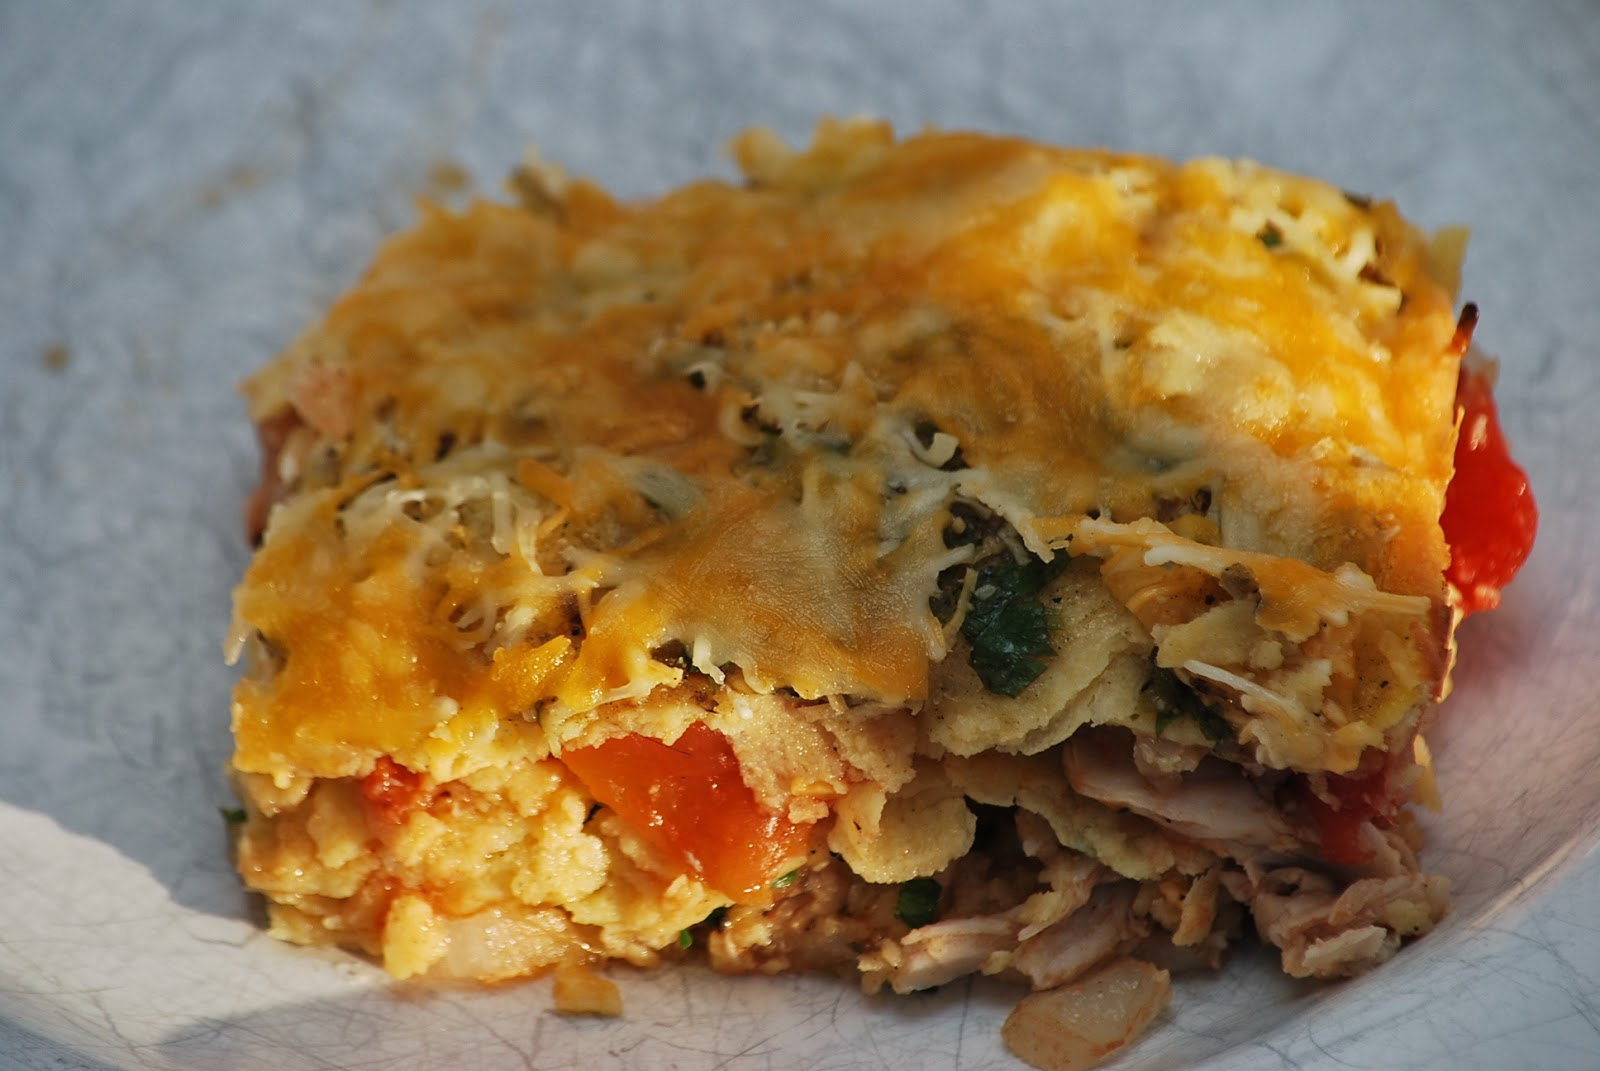 My story in recipes: Stacked Chicken Enchiladas